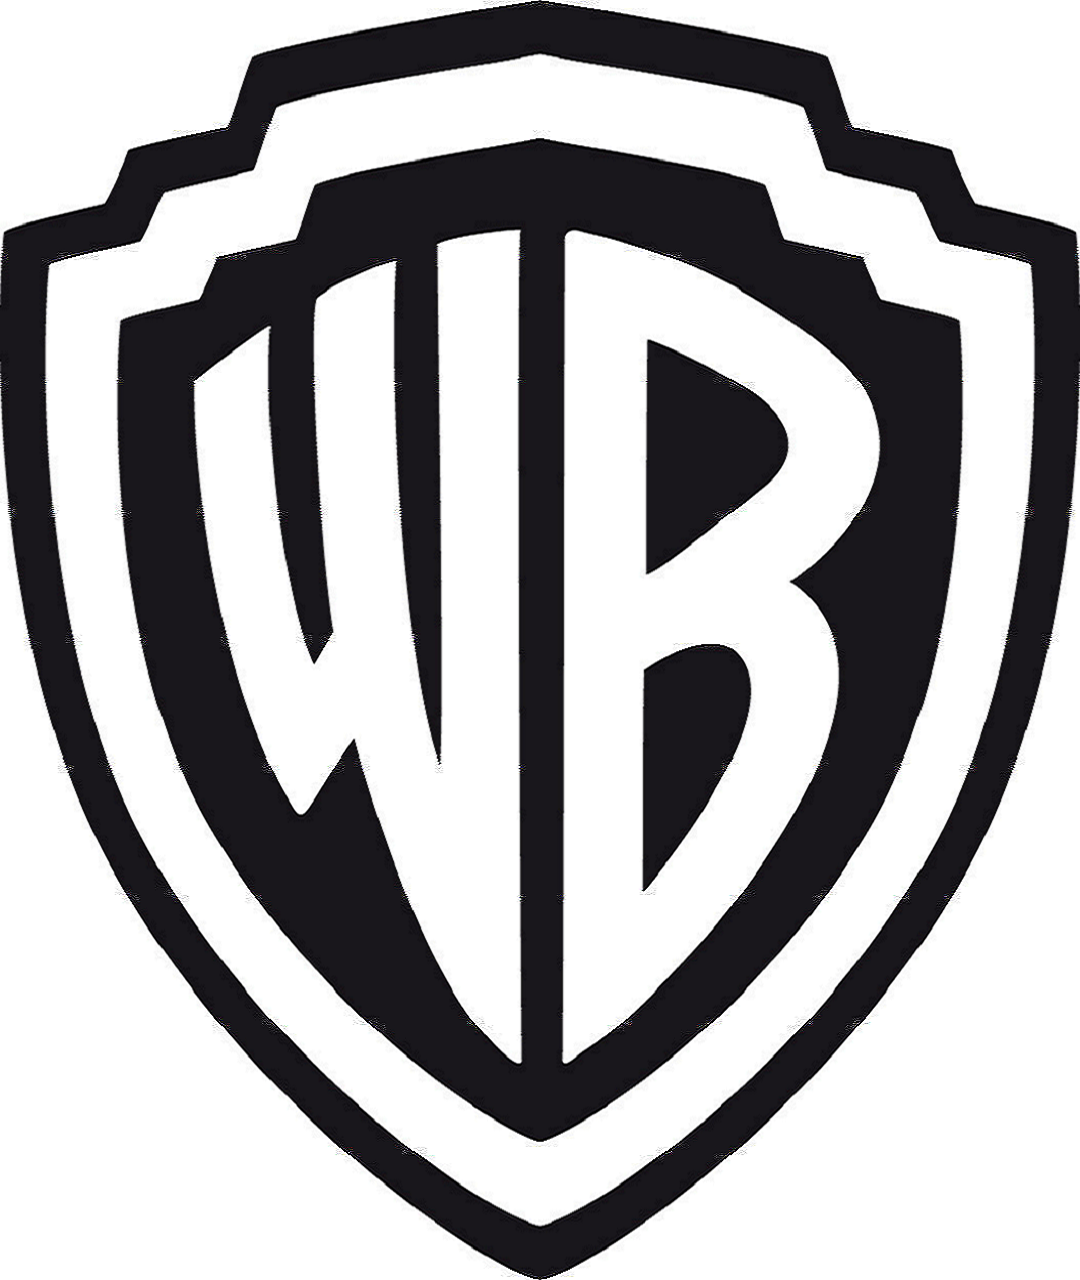 Warner Bros Logo PNG Transparent Warner Bros Logo.PNG Images.